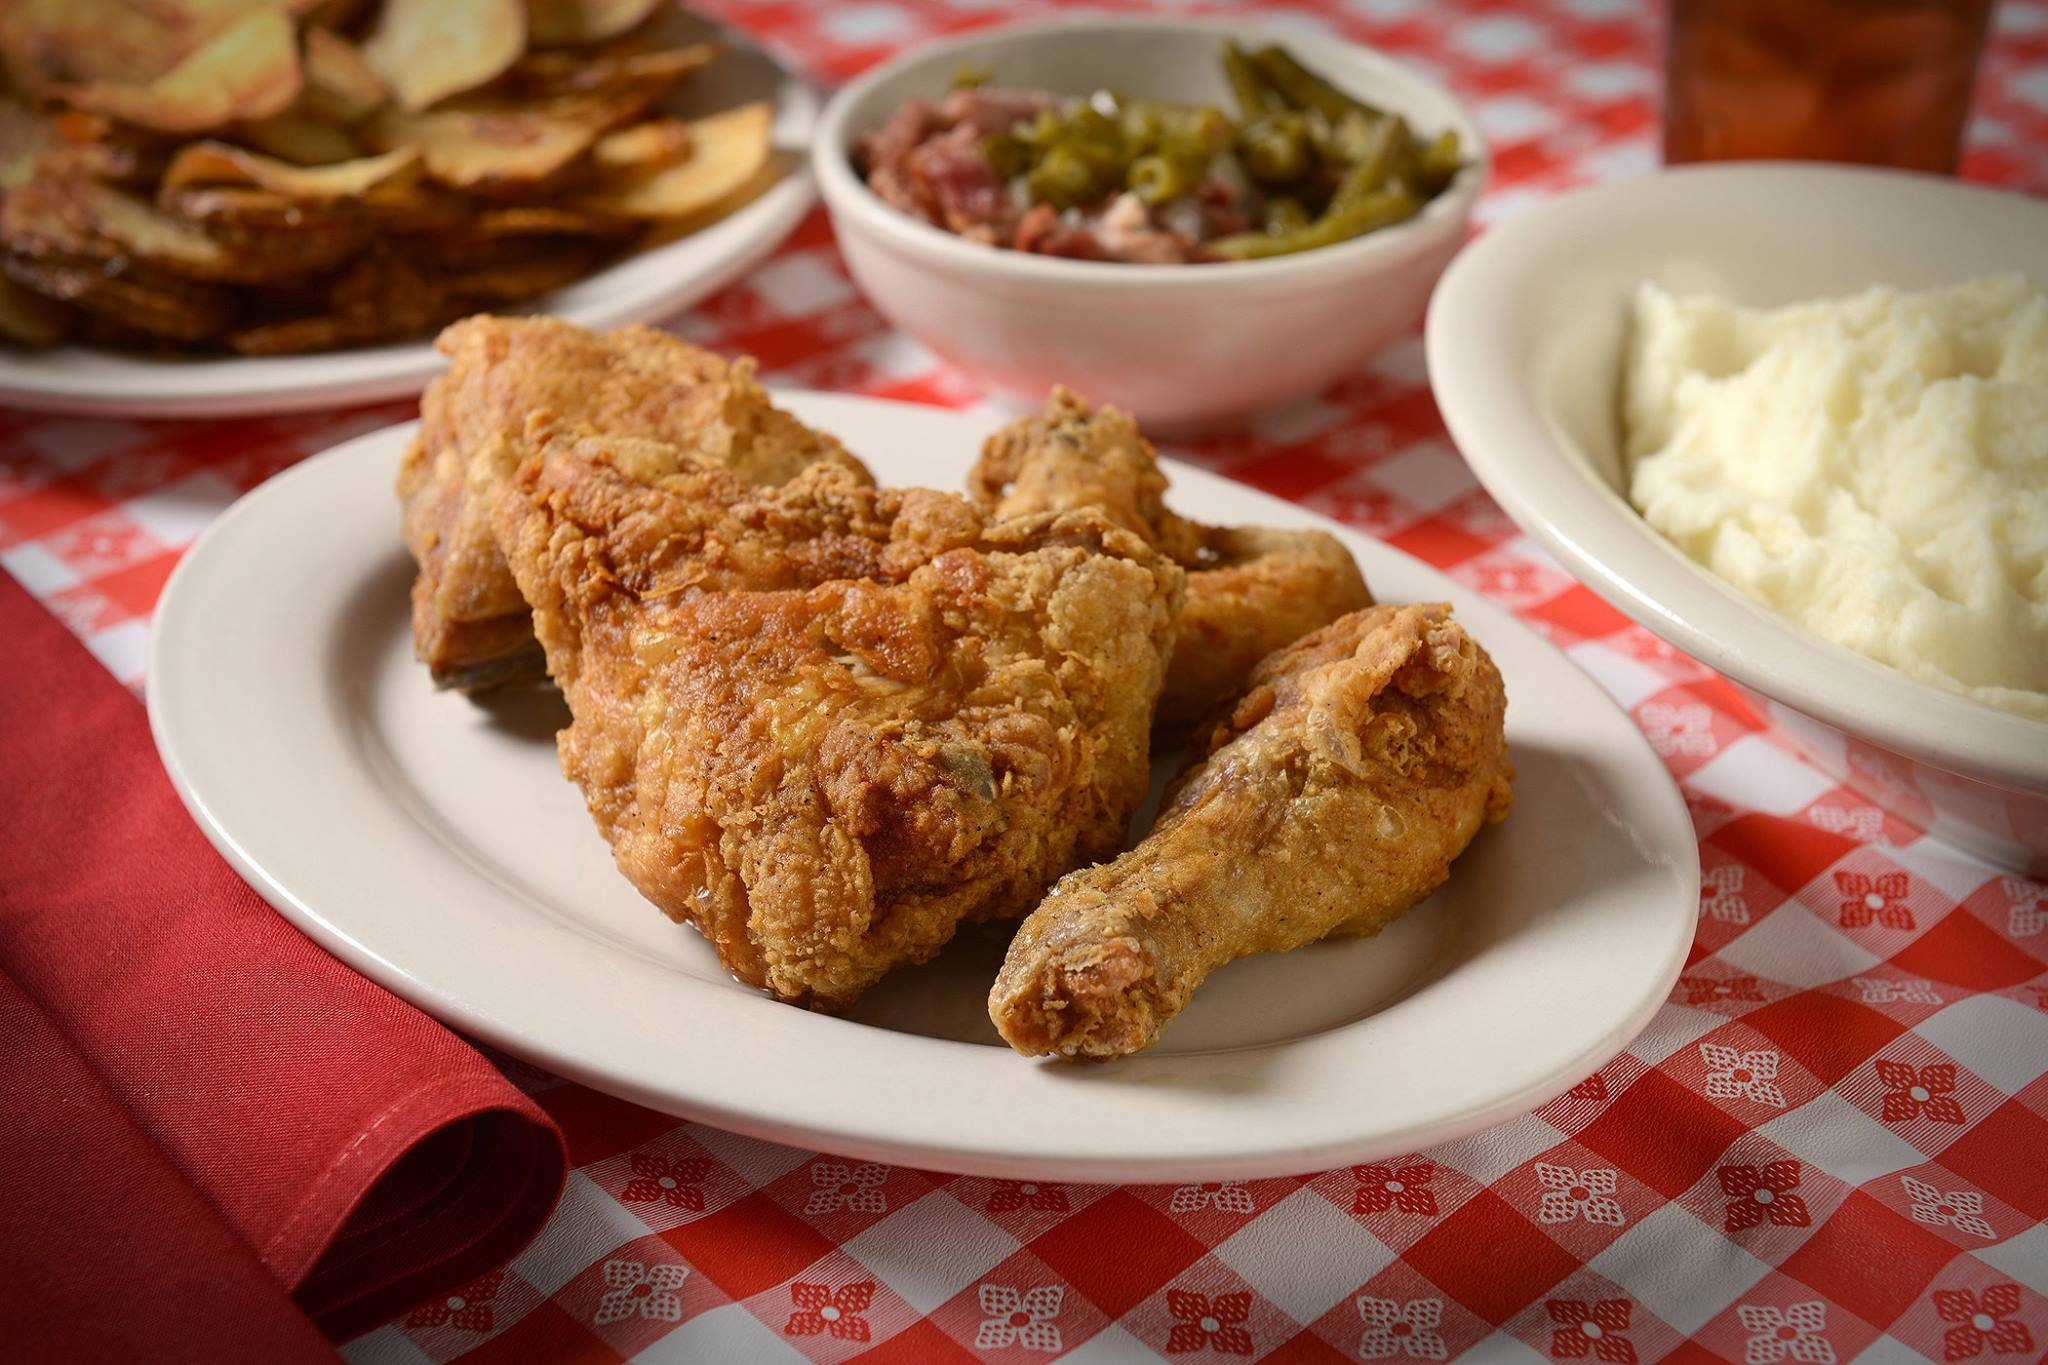 Overland Park is the luck recipient of the third Stroud's fried chicken joint.